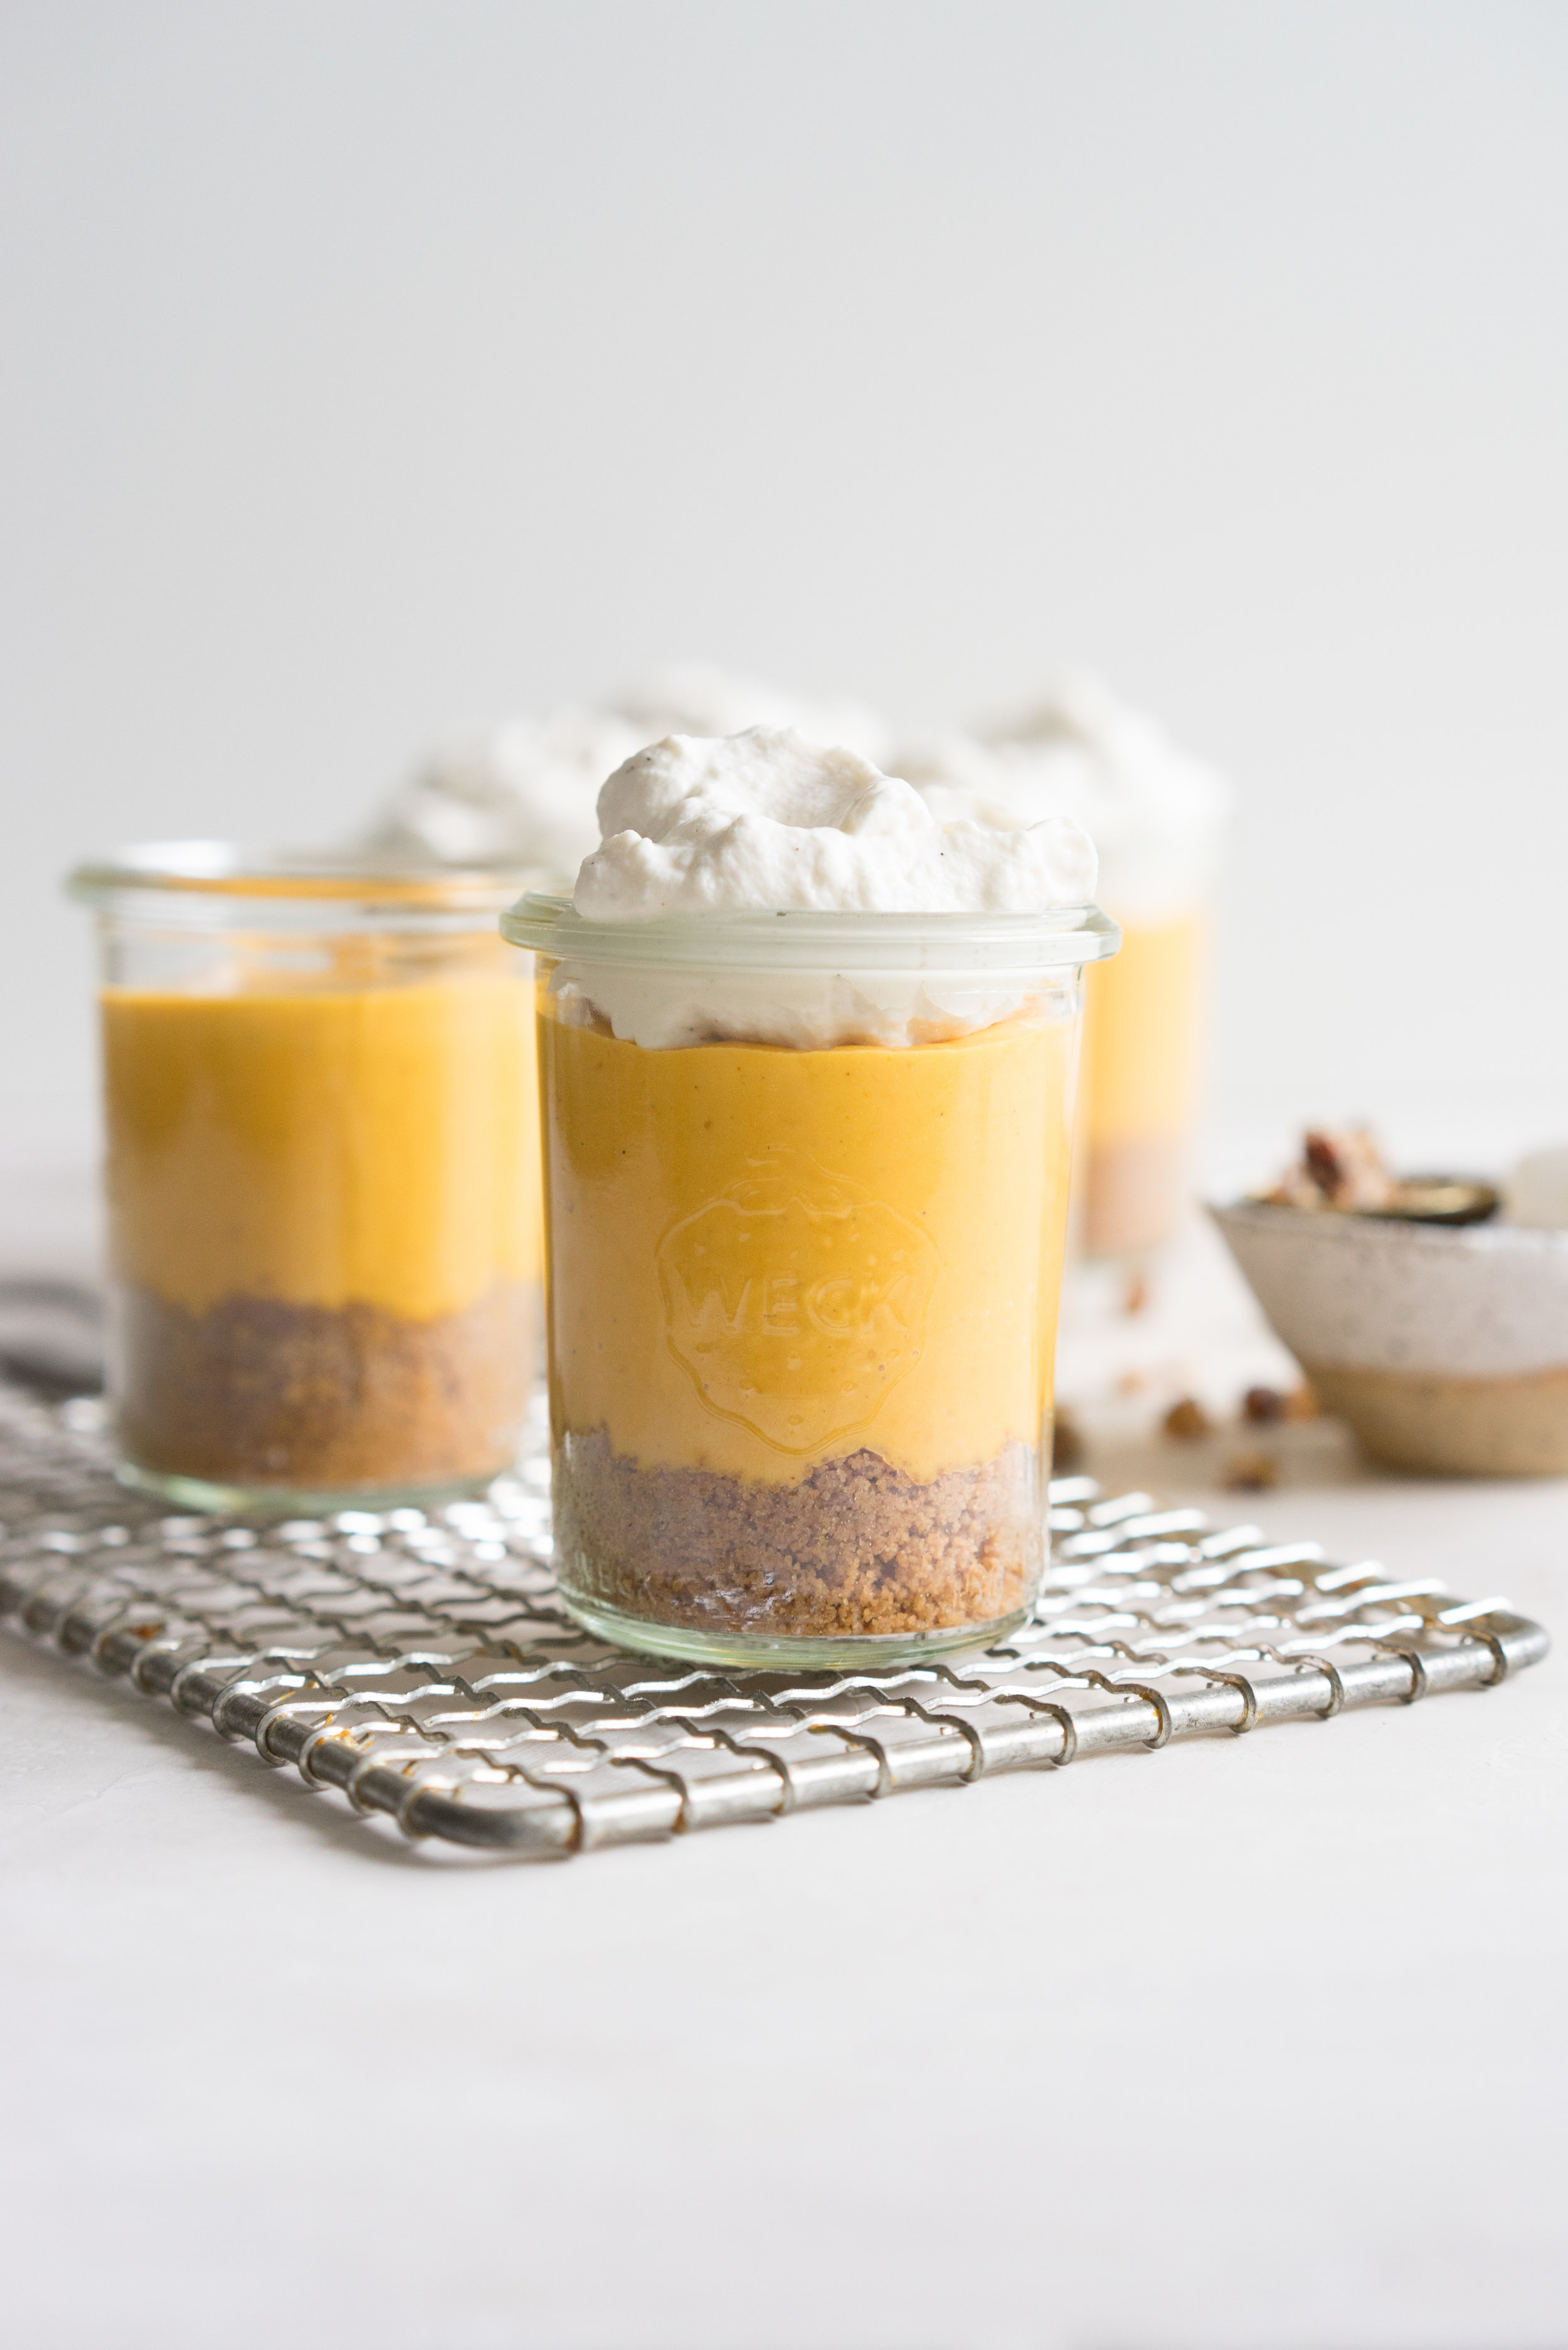 Spiced Shortbread and Pumpkin Custard Dessert Jars - spiced shortbread is topped with a brown sugar custard, then finished with a vanilla bean and maple whipped cream, and garnished with a pecan crunch.